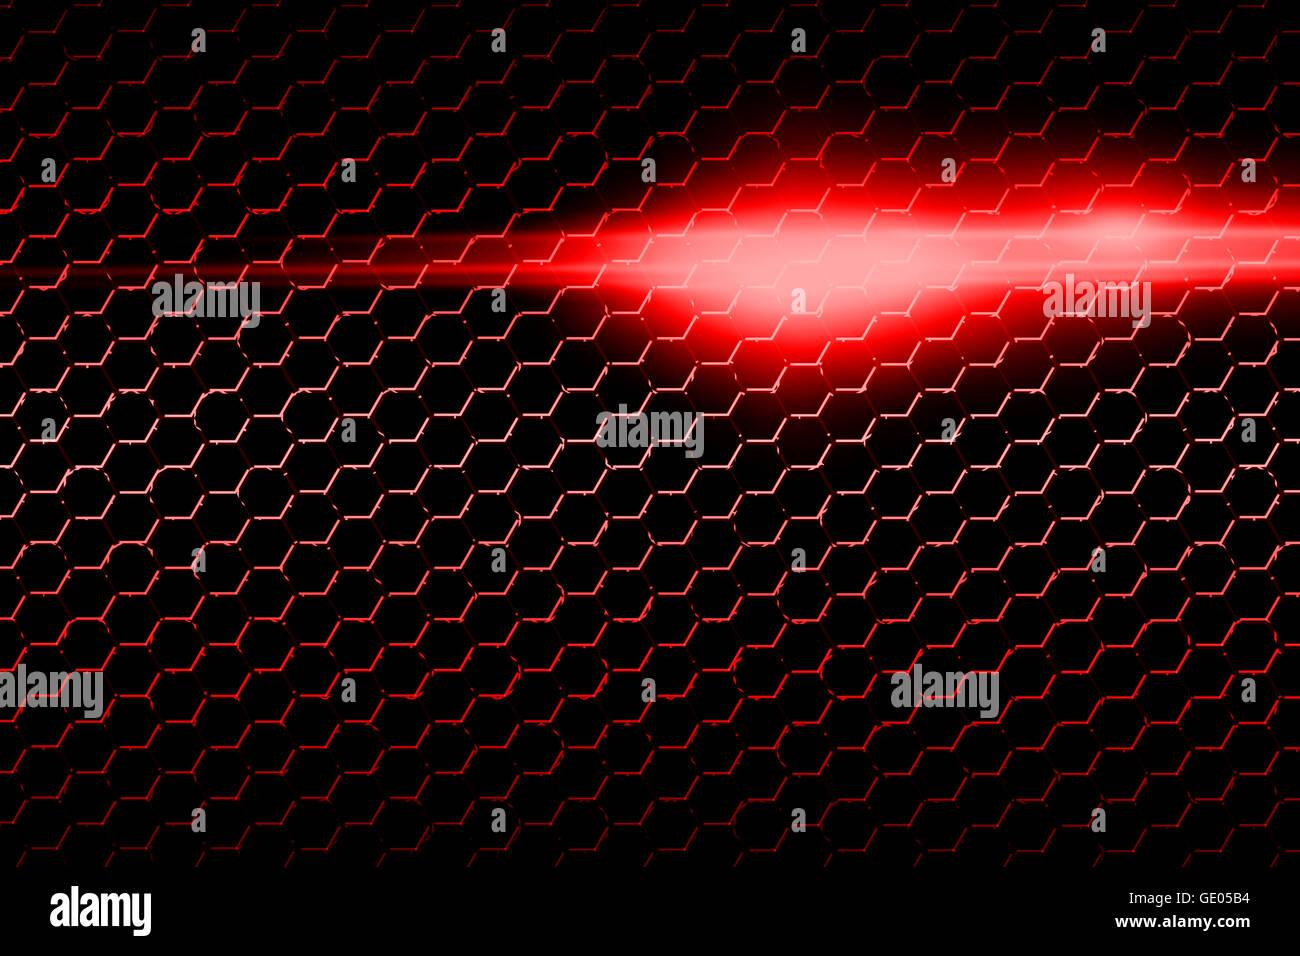 Red And Black Silver Metallic Mesh Background Texture